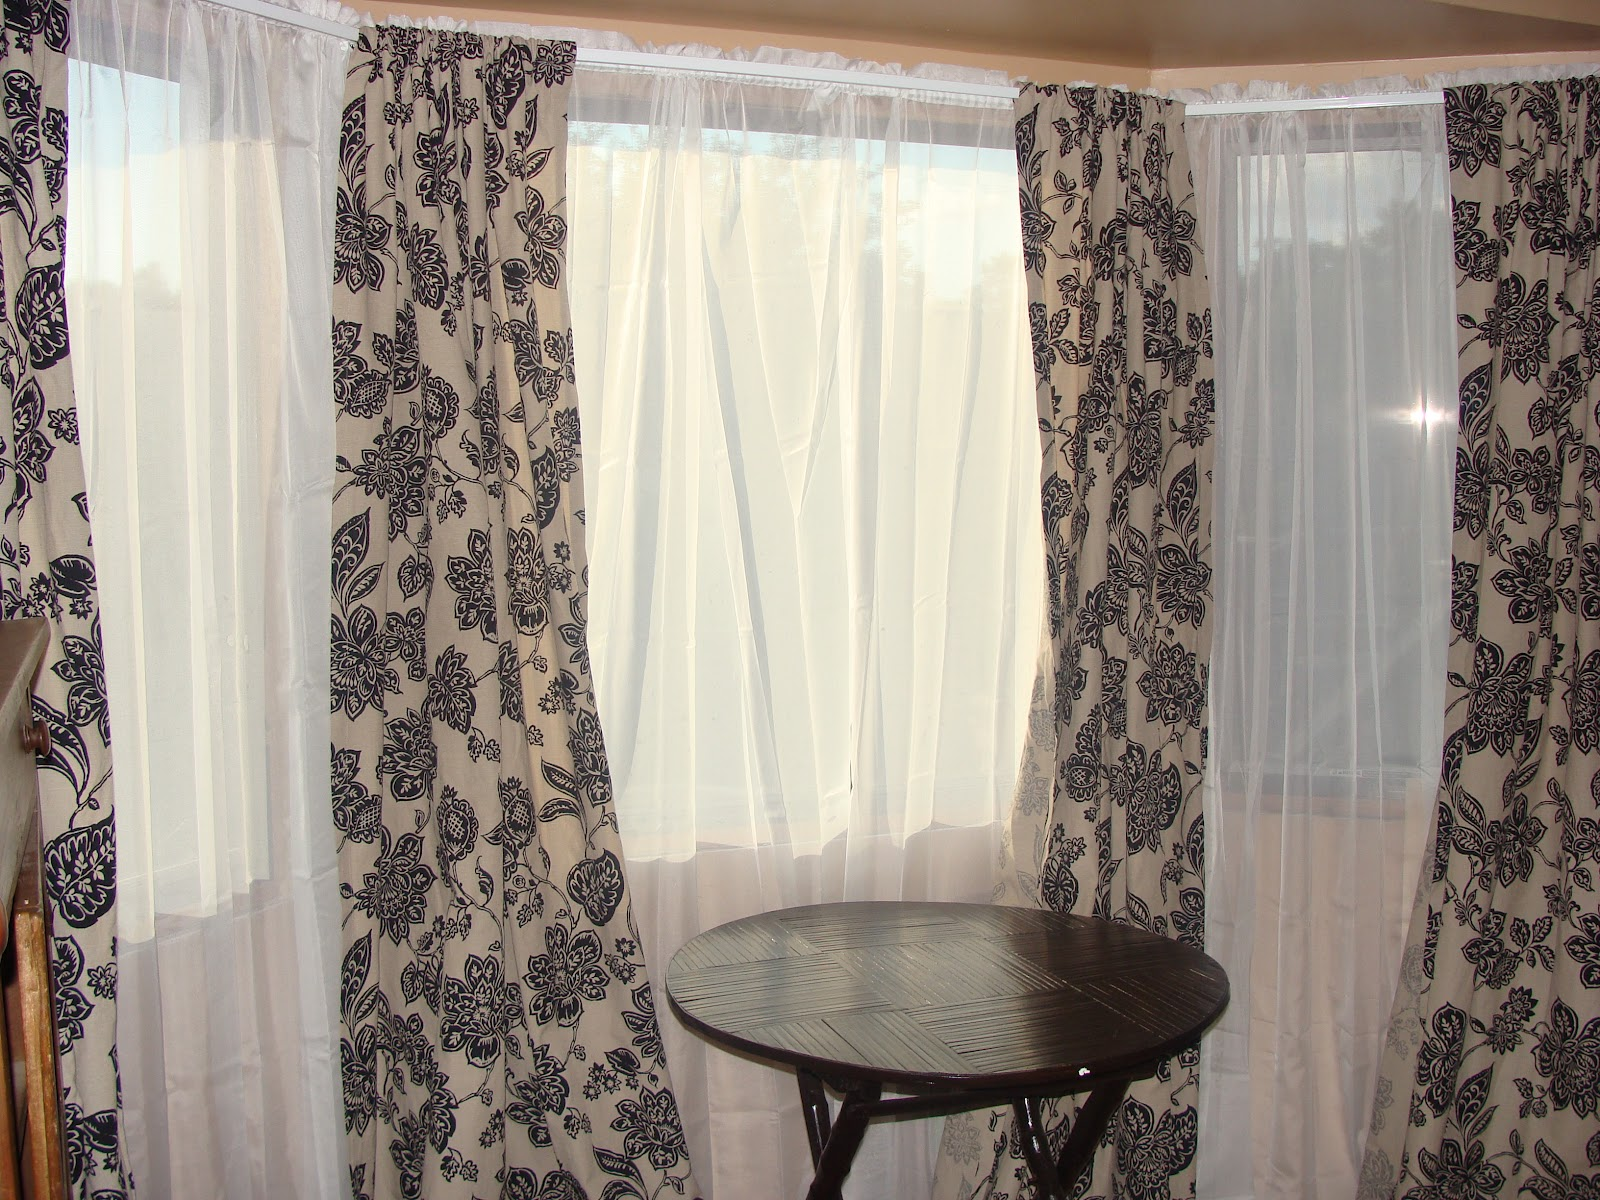 Bedroom Drapes With Matching Bedding | Bedroom Furniture ...